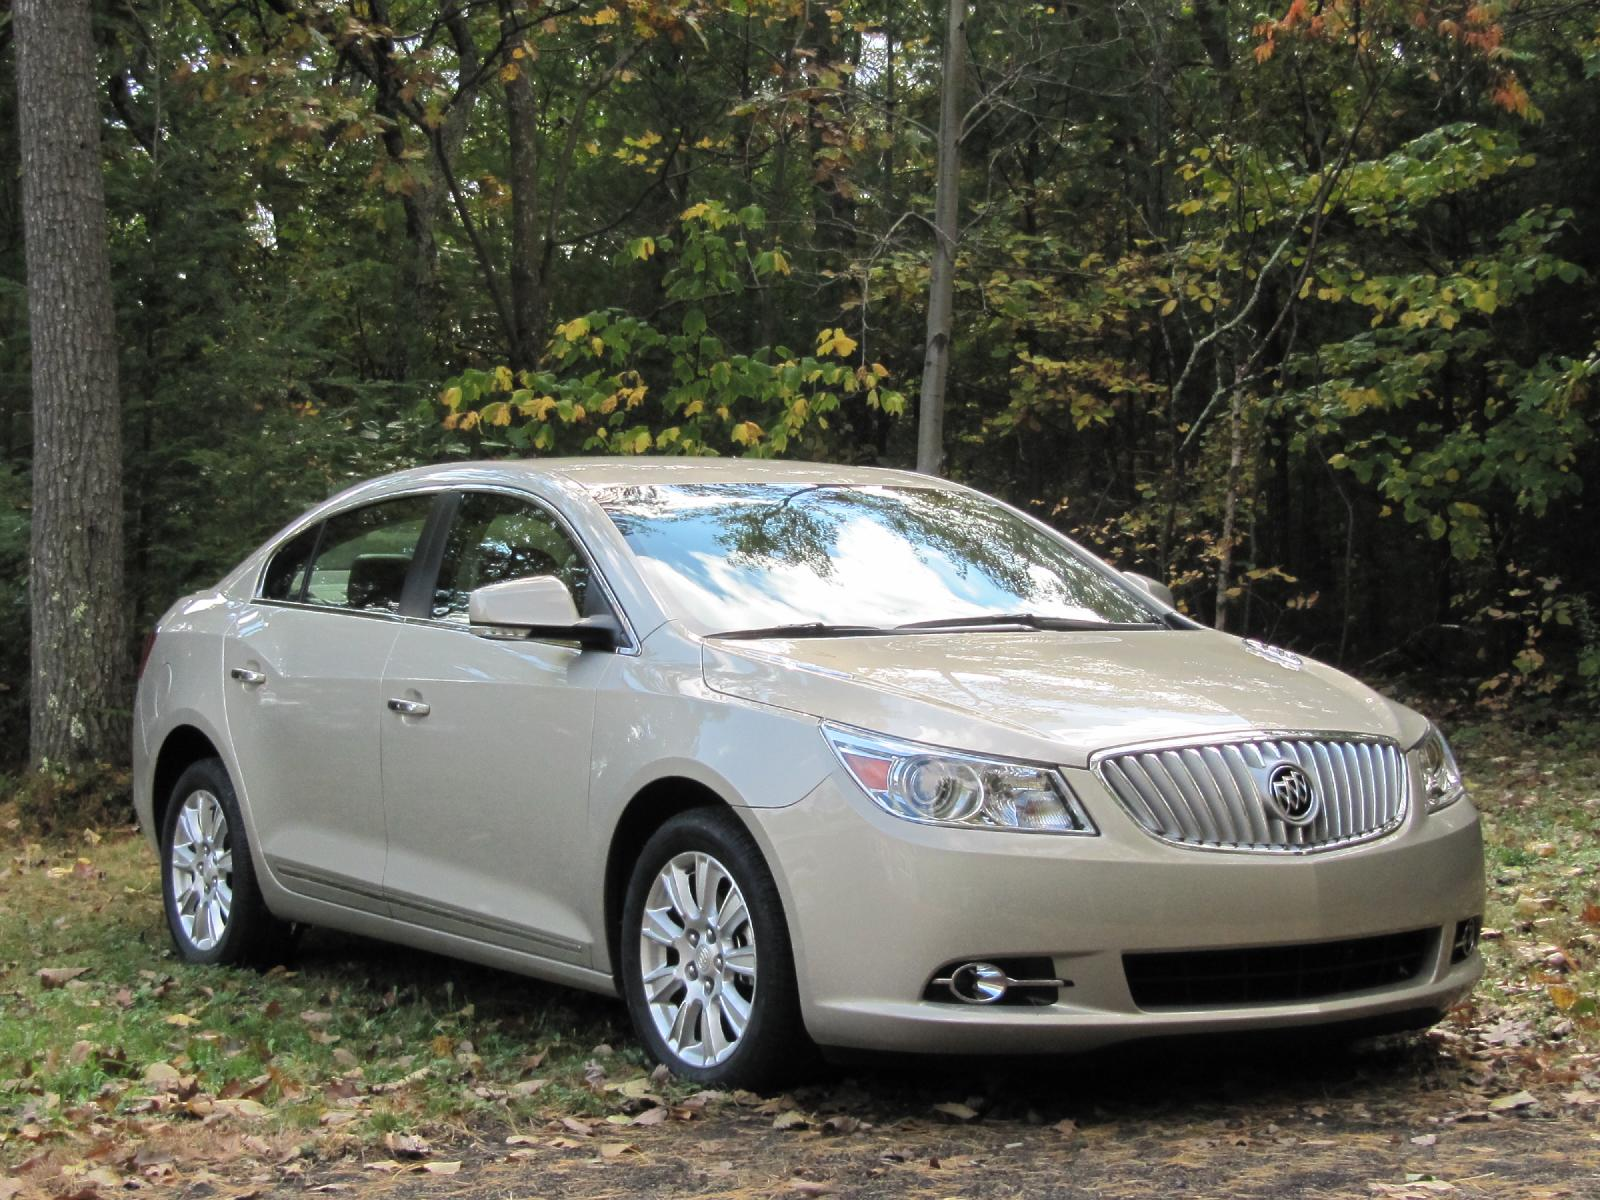 Buick Lacrosse H